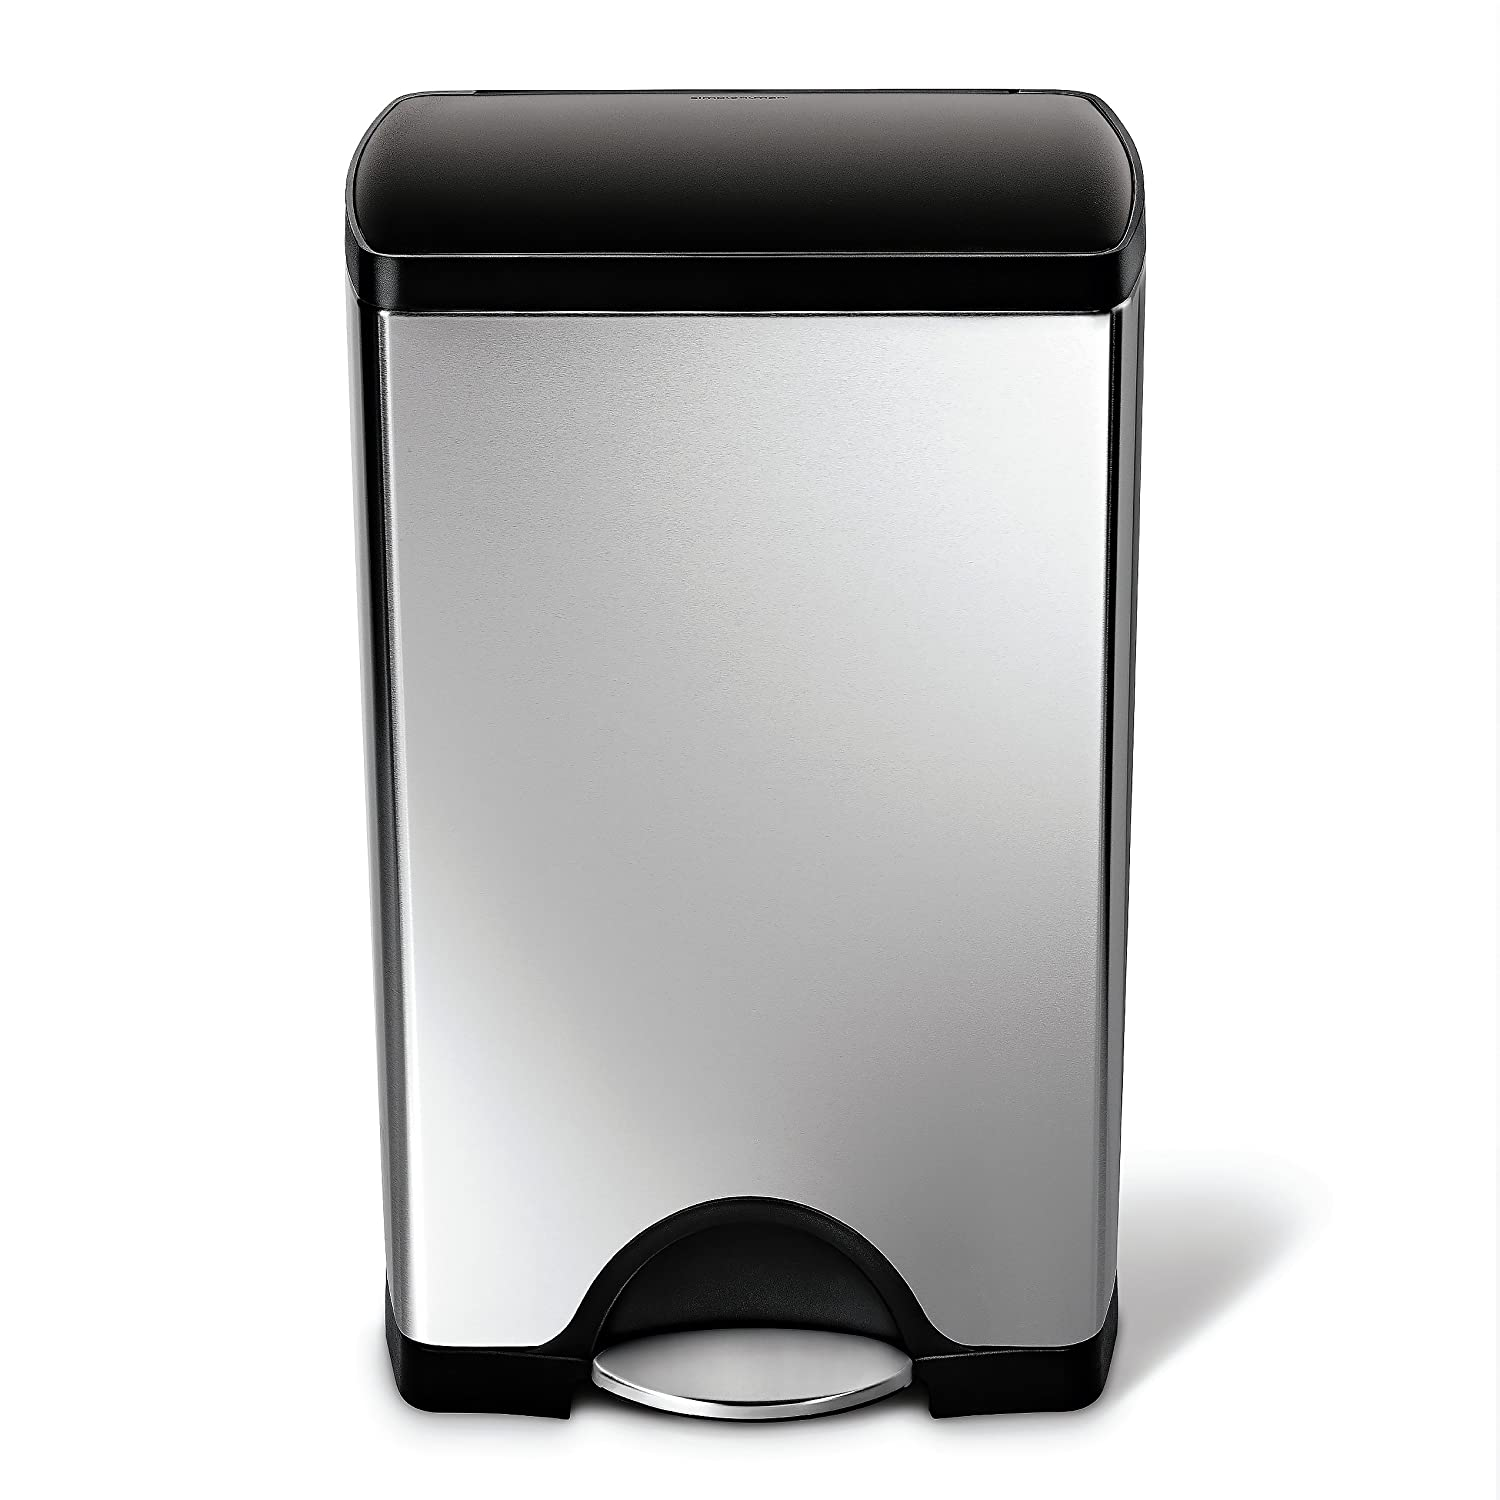 Bon Amazon.com: Simplehuman Rectangular Step Trash Can, Stainless Steel,  Plastic Lid, 38 L / 10 Gal: Home U0026 Kitchen